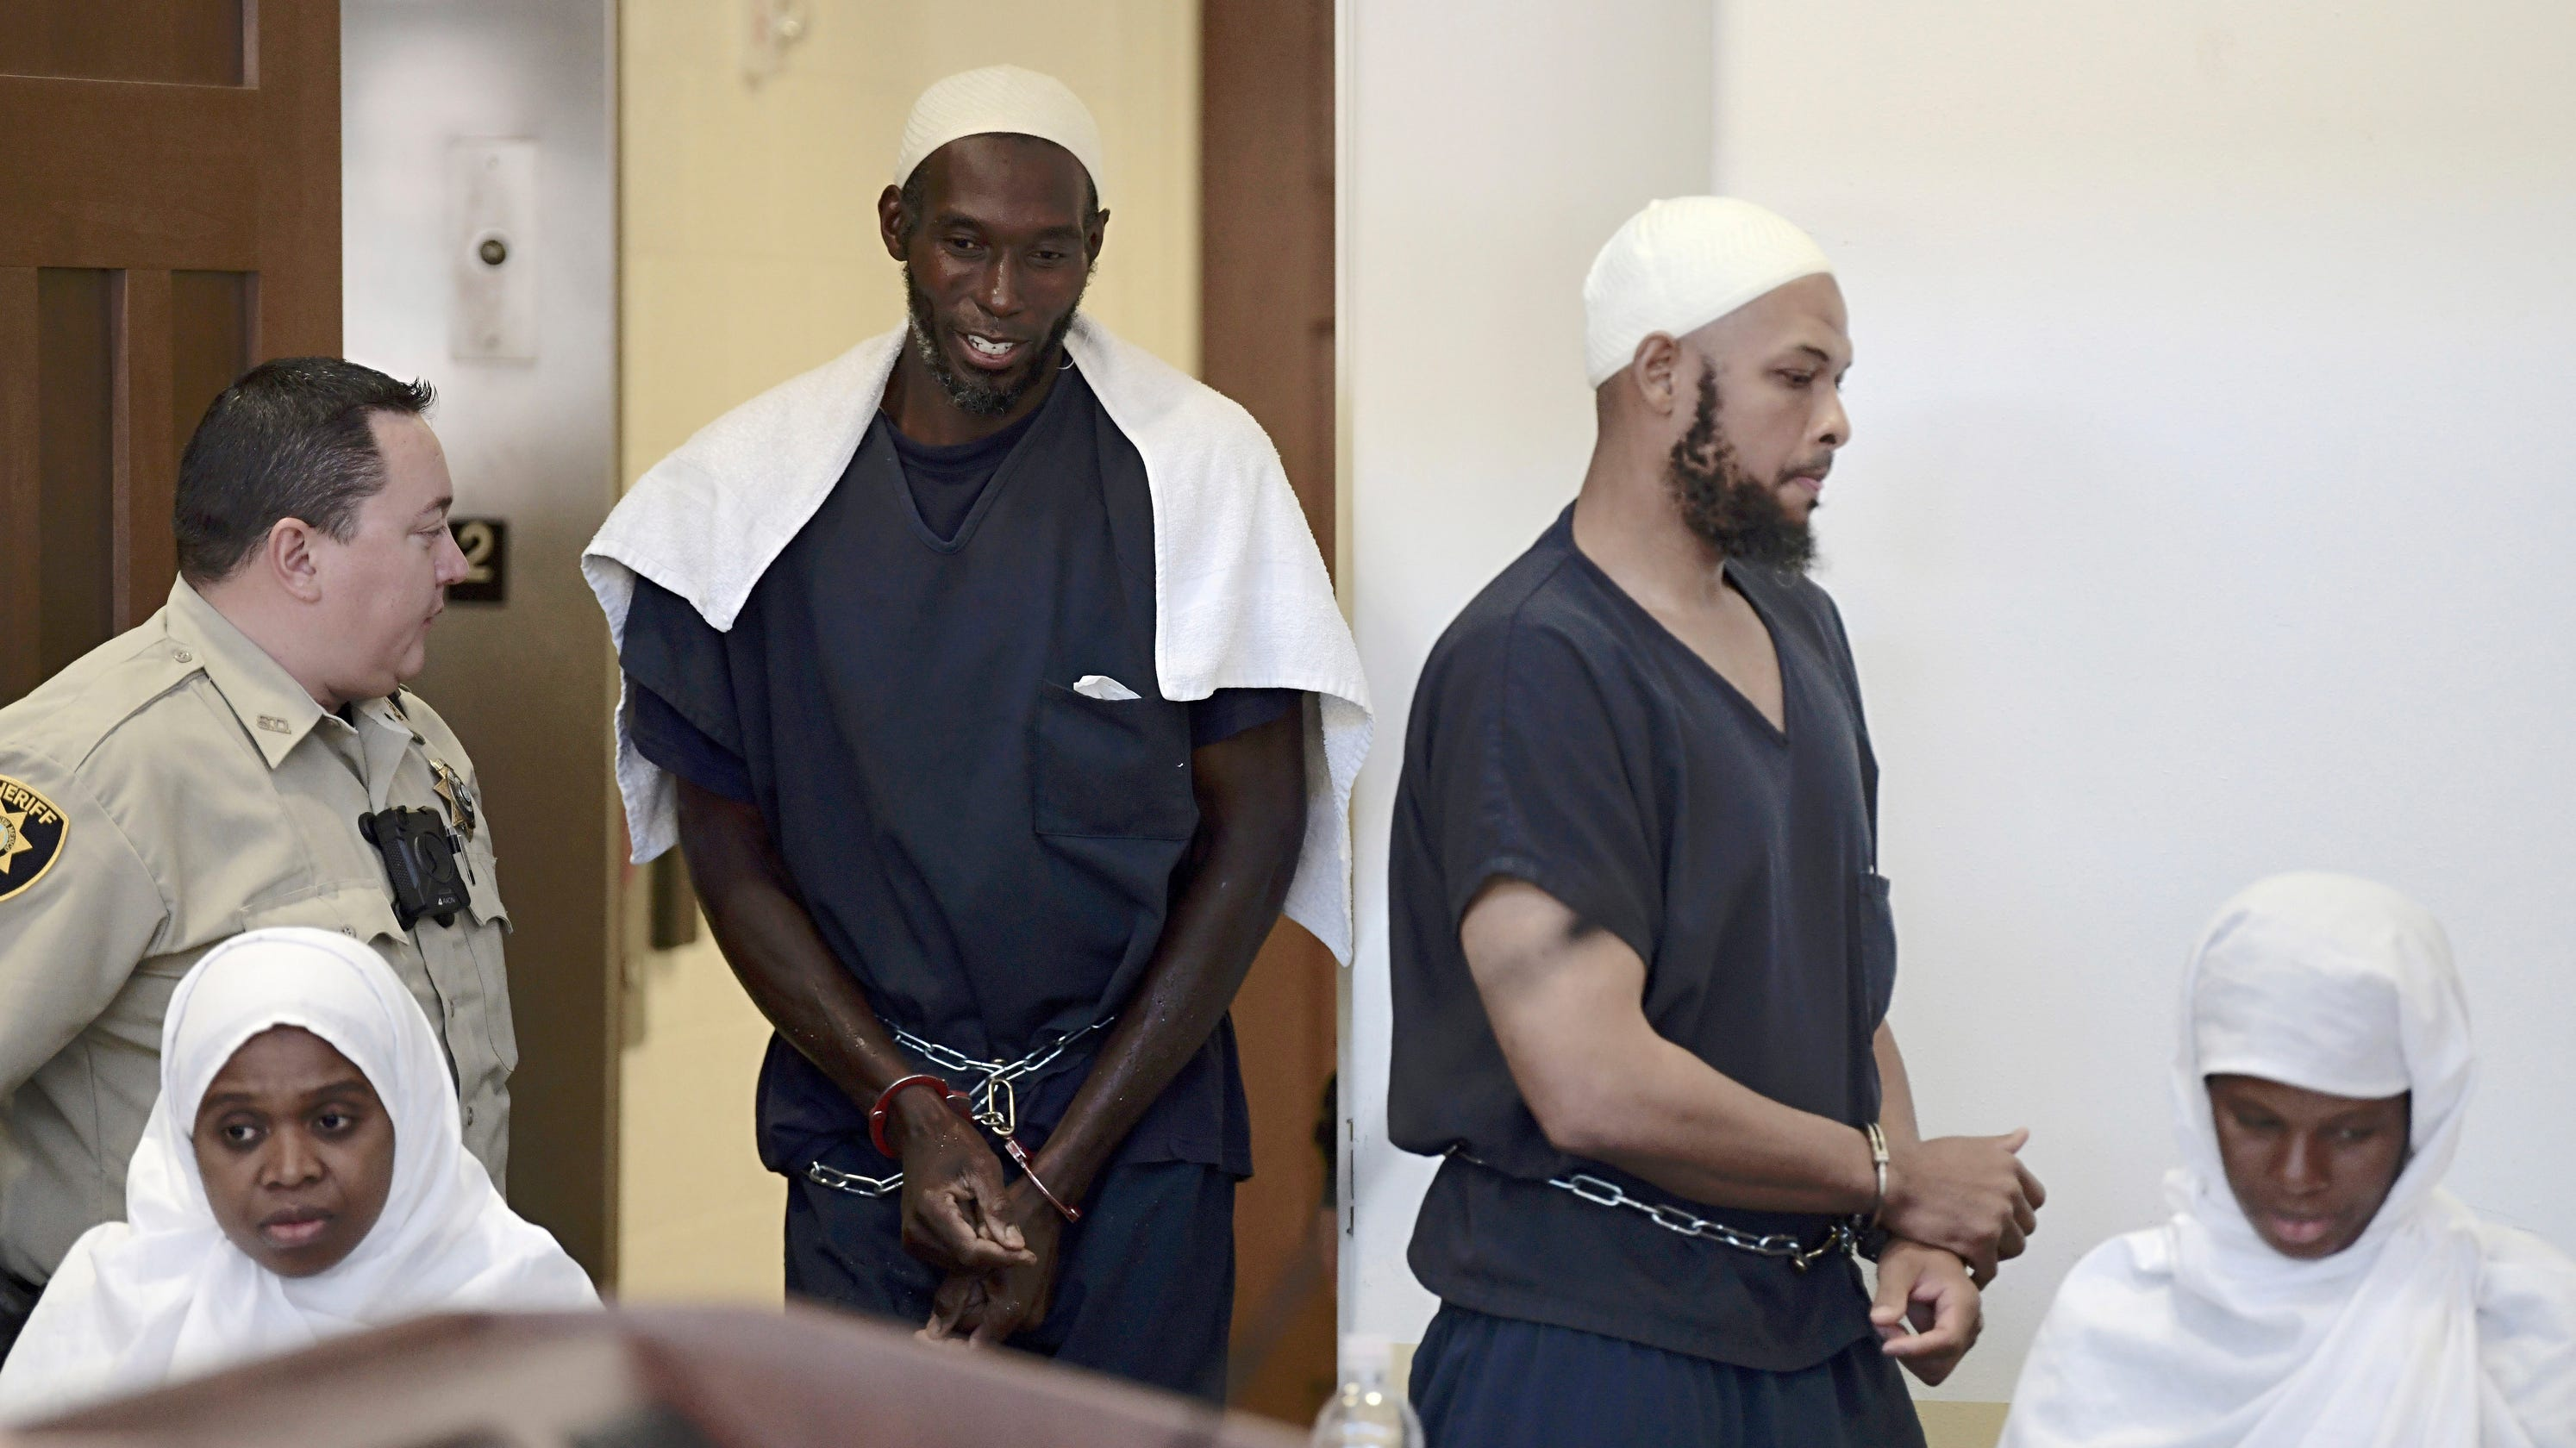 New Mexico compound: FBI agent says Muslim family was